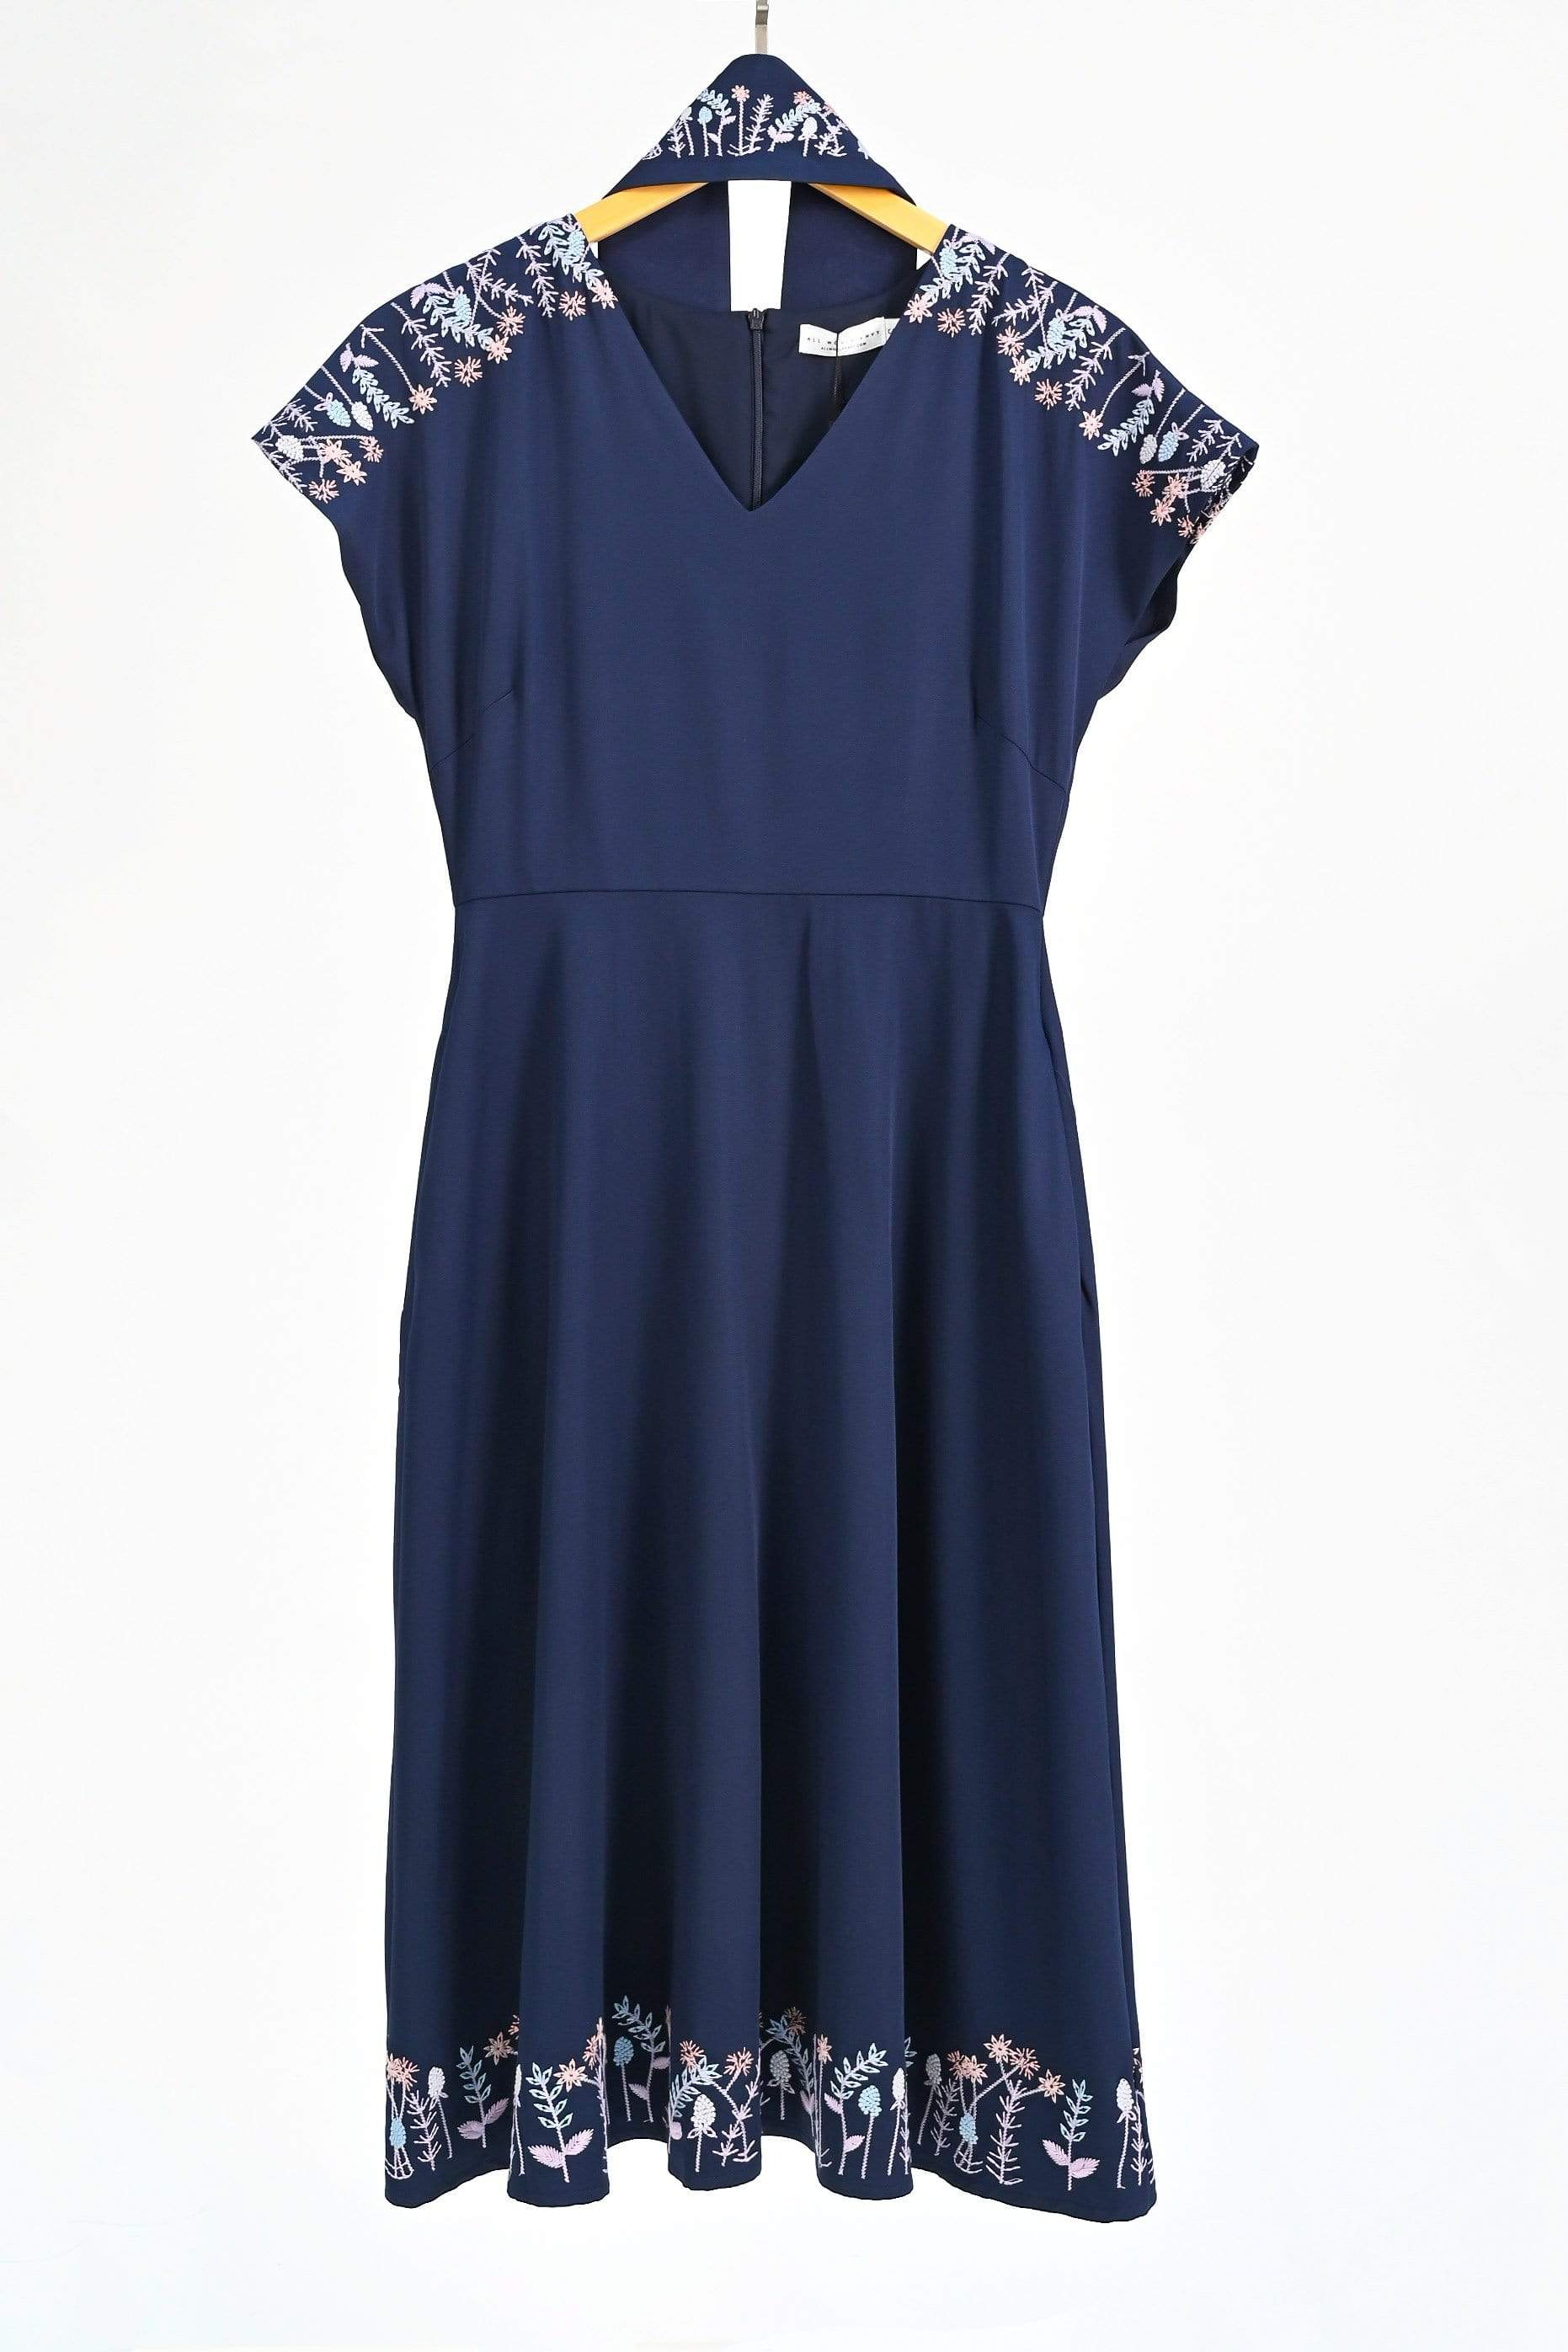 ELIA NAVY OBI-SASH SLEEVED EMBROIDERY DRESS